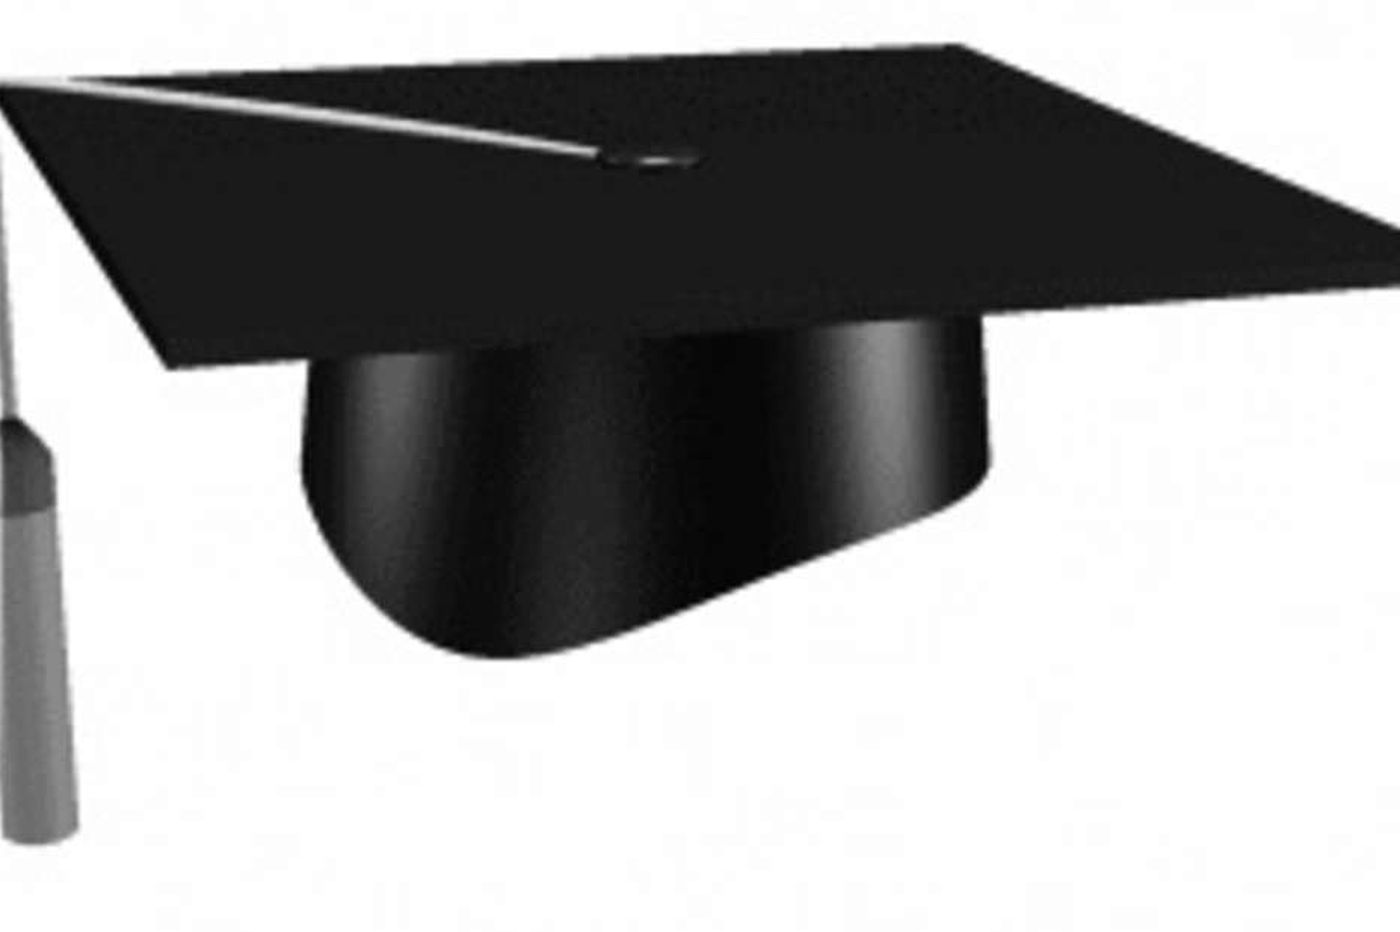 PhillyDeals: Credit rating firm implements college savings plan for employees